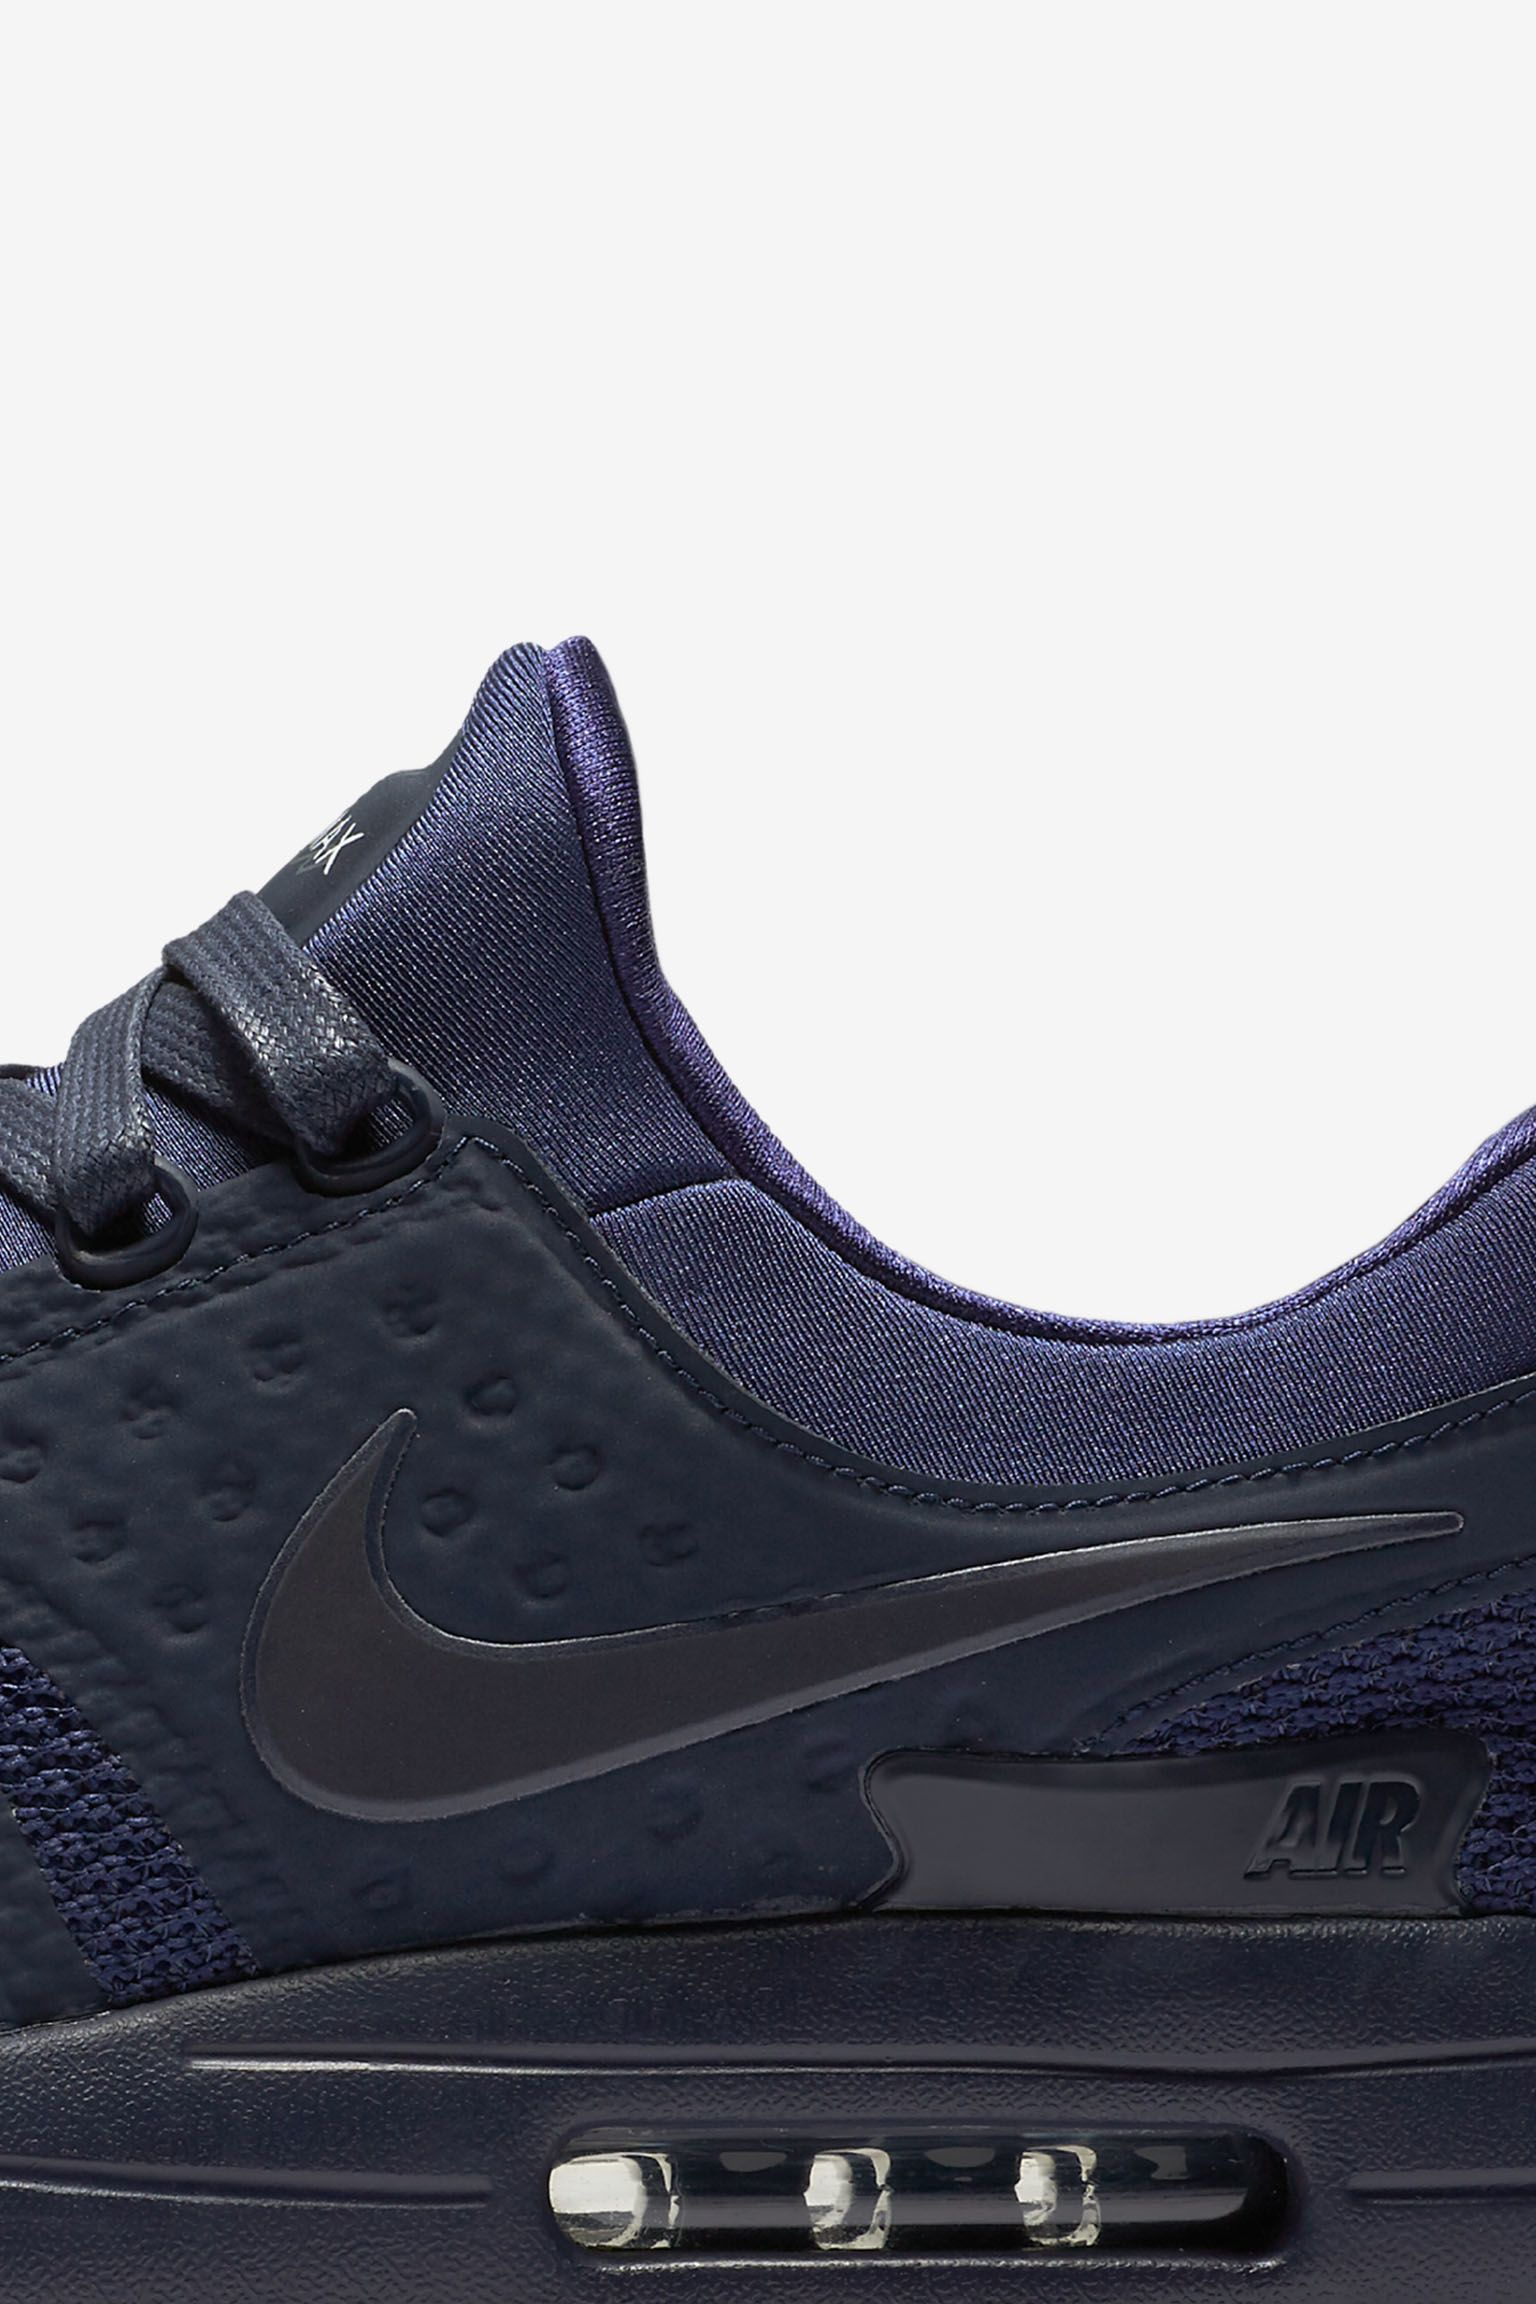 Nike Air Max Zero 'Binary Blue' Release Date